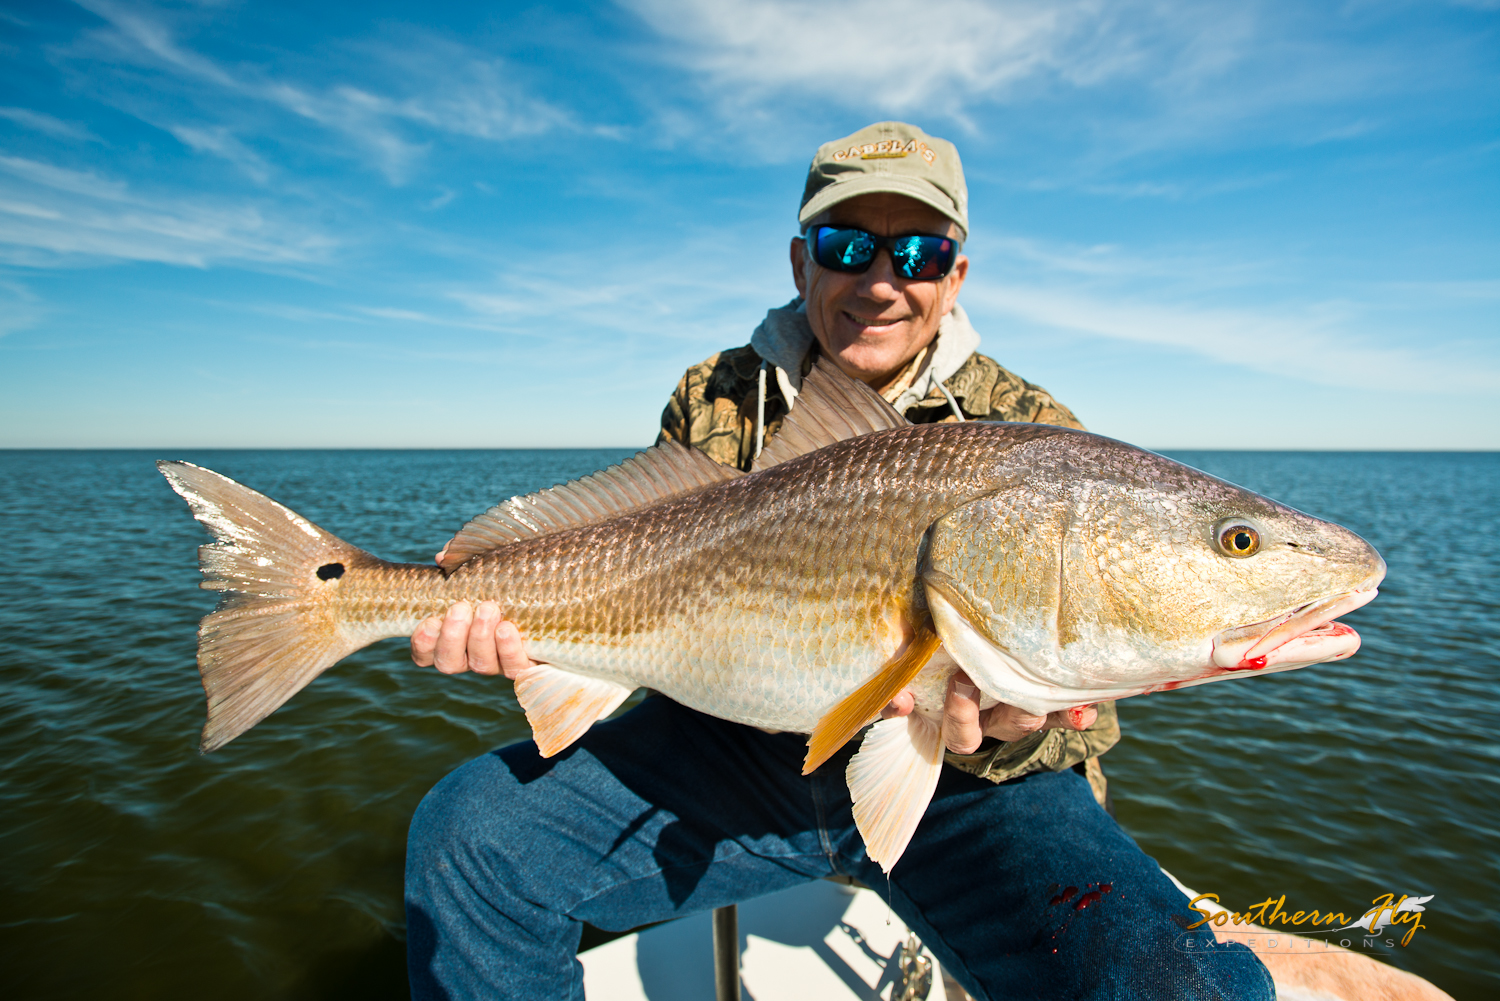 Spin Fishing Bull Reds with Fly Fishing Charter Southern Fly Expeditions